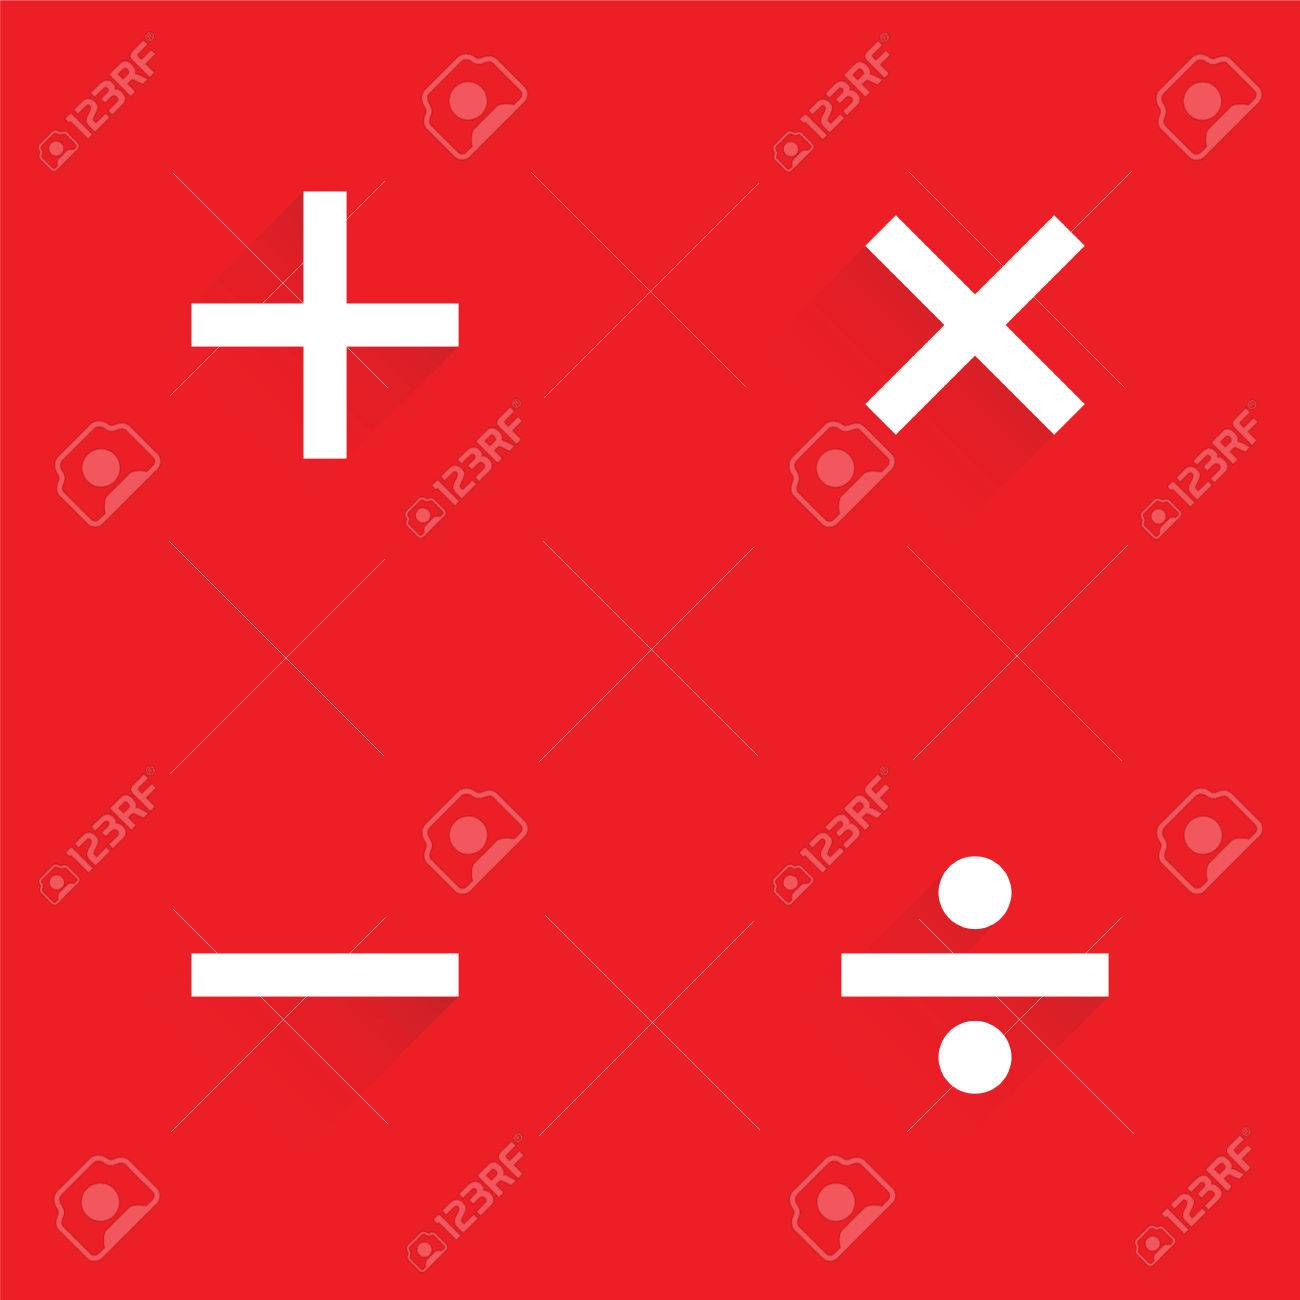 Basic mathematical symbols on red background royalty free cliparts basic mathematical symbols on red background stock vector 49007251 biocorpaavc Image collections